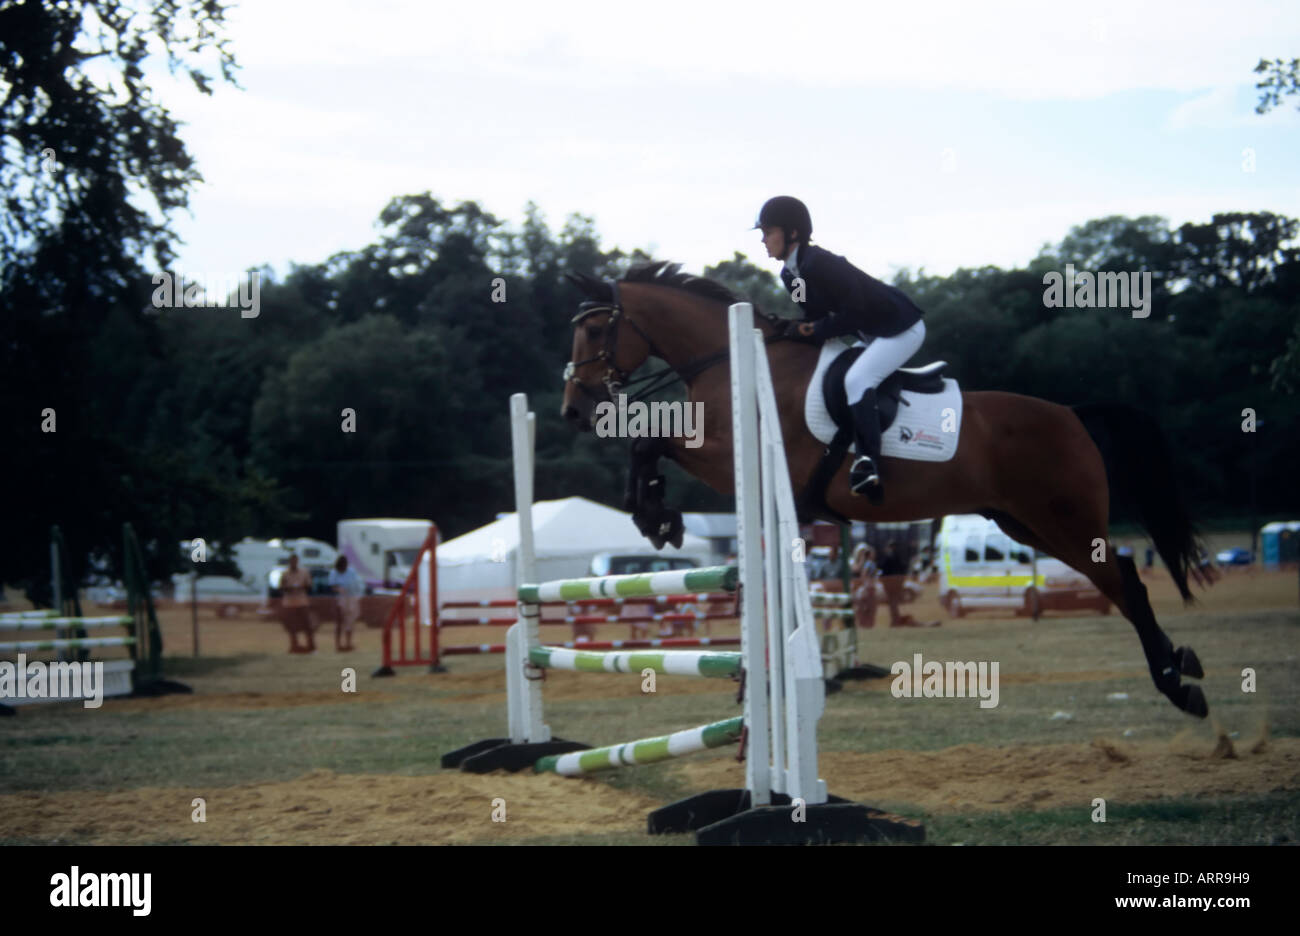 A horse and rider in action during the showjumping competition at the Romsey and Ellingham Country Fair 12th August 2006 - Stock Image